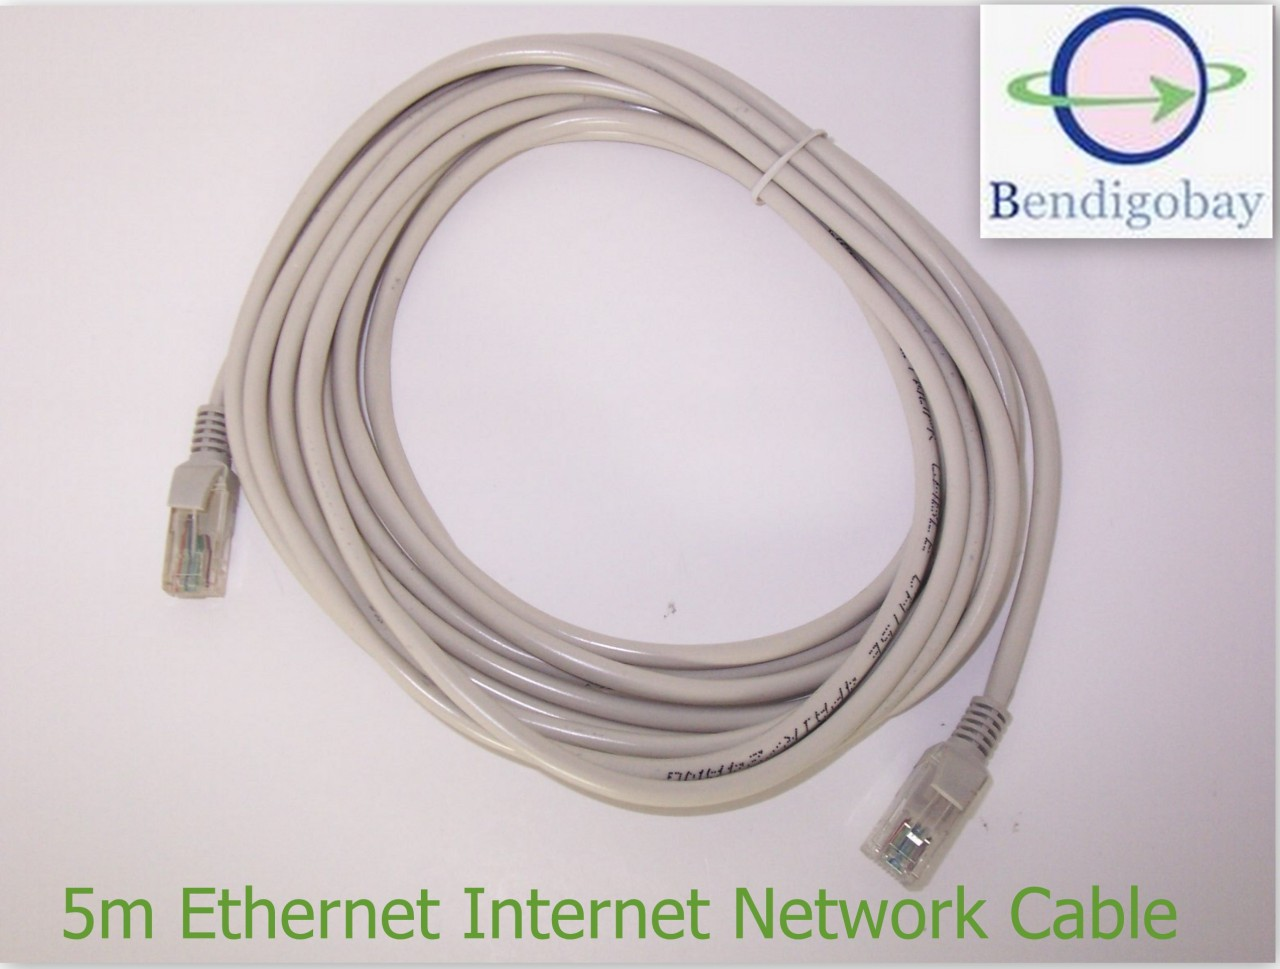 5M-Ethernet-Internet-Network-Cable-Lead